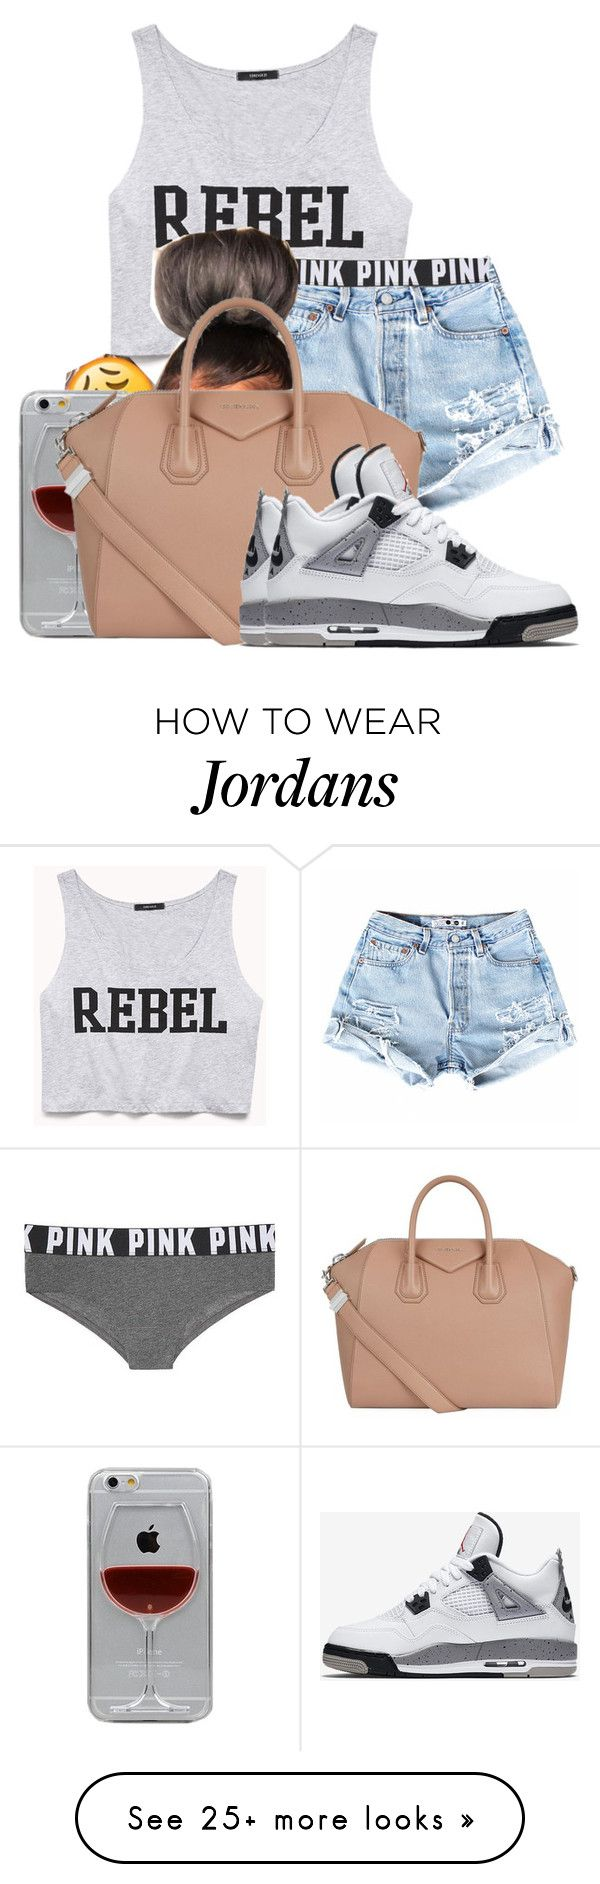 """Untitled #587"" by sipping-gold on Polyvore featuring Forever 21, Victoria's Secret, Reyes, Givenchy, NIKE, jeanshorts, denimshorts and cutoffs"